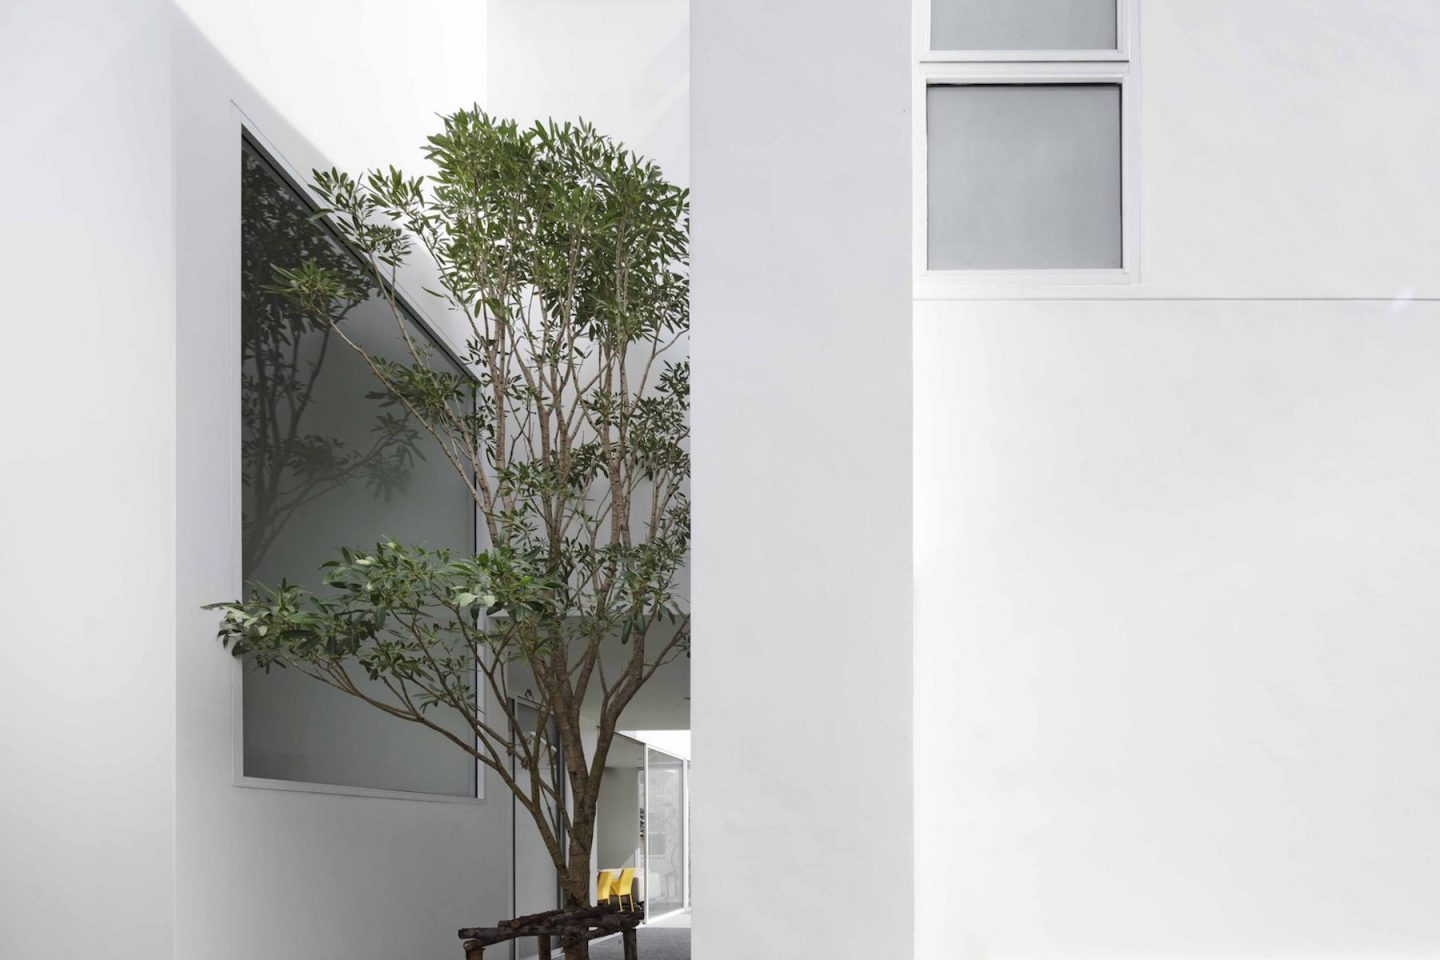 iGNANT-Architecture-Ayutt-And-Associates-Design-White-Box-House-01